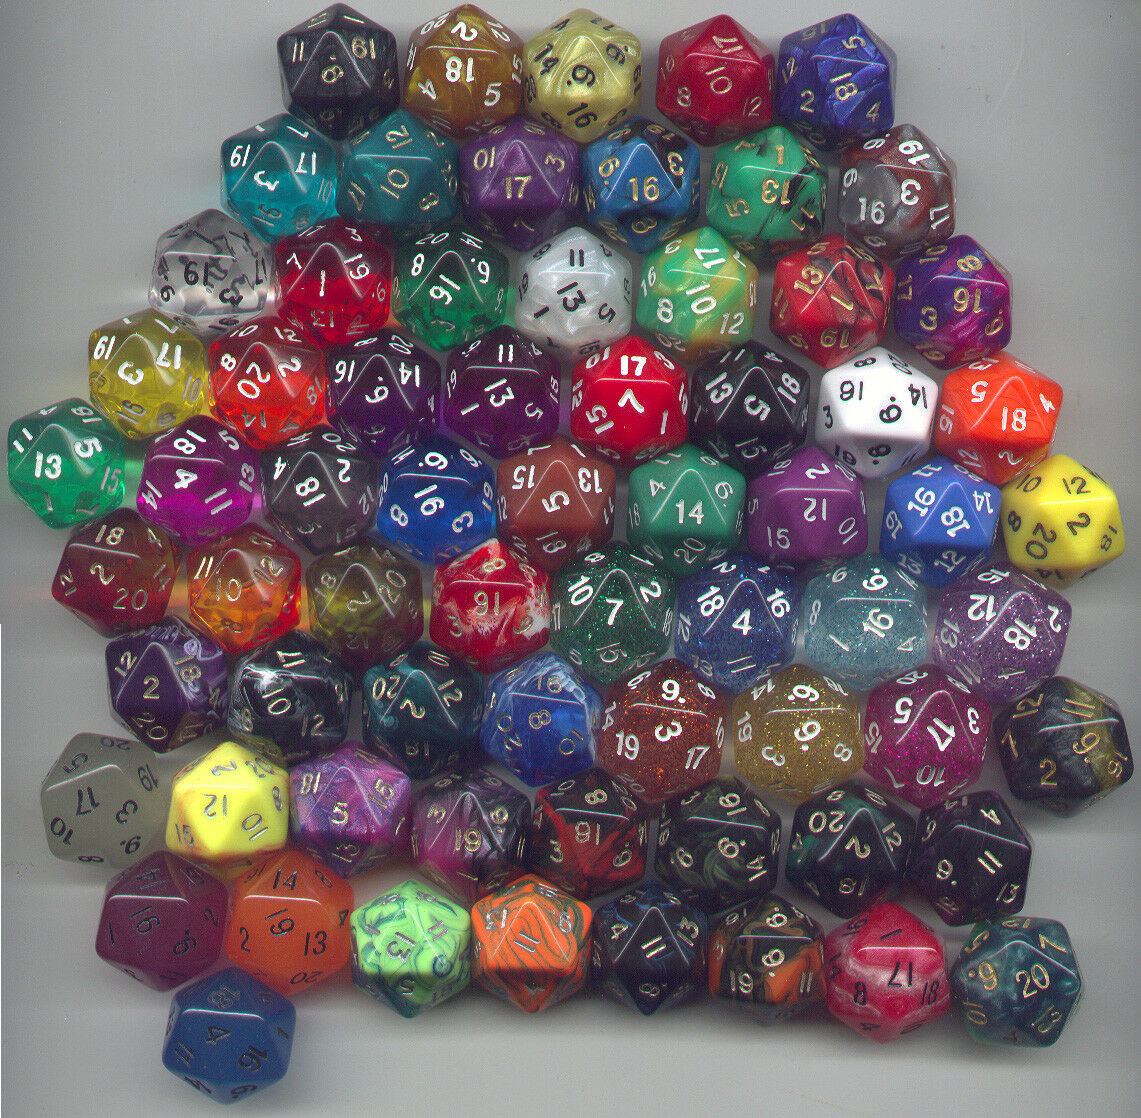 RPG Dice Set of 60 D20 - Mix Set of D20s